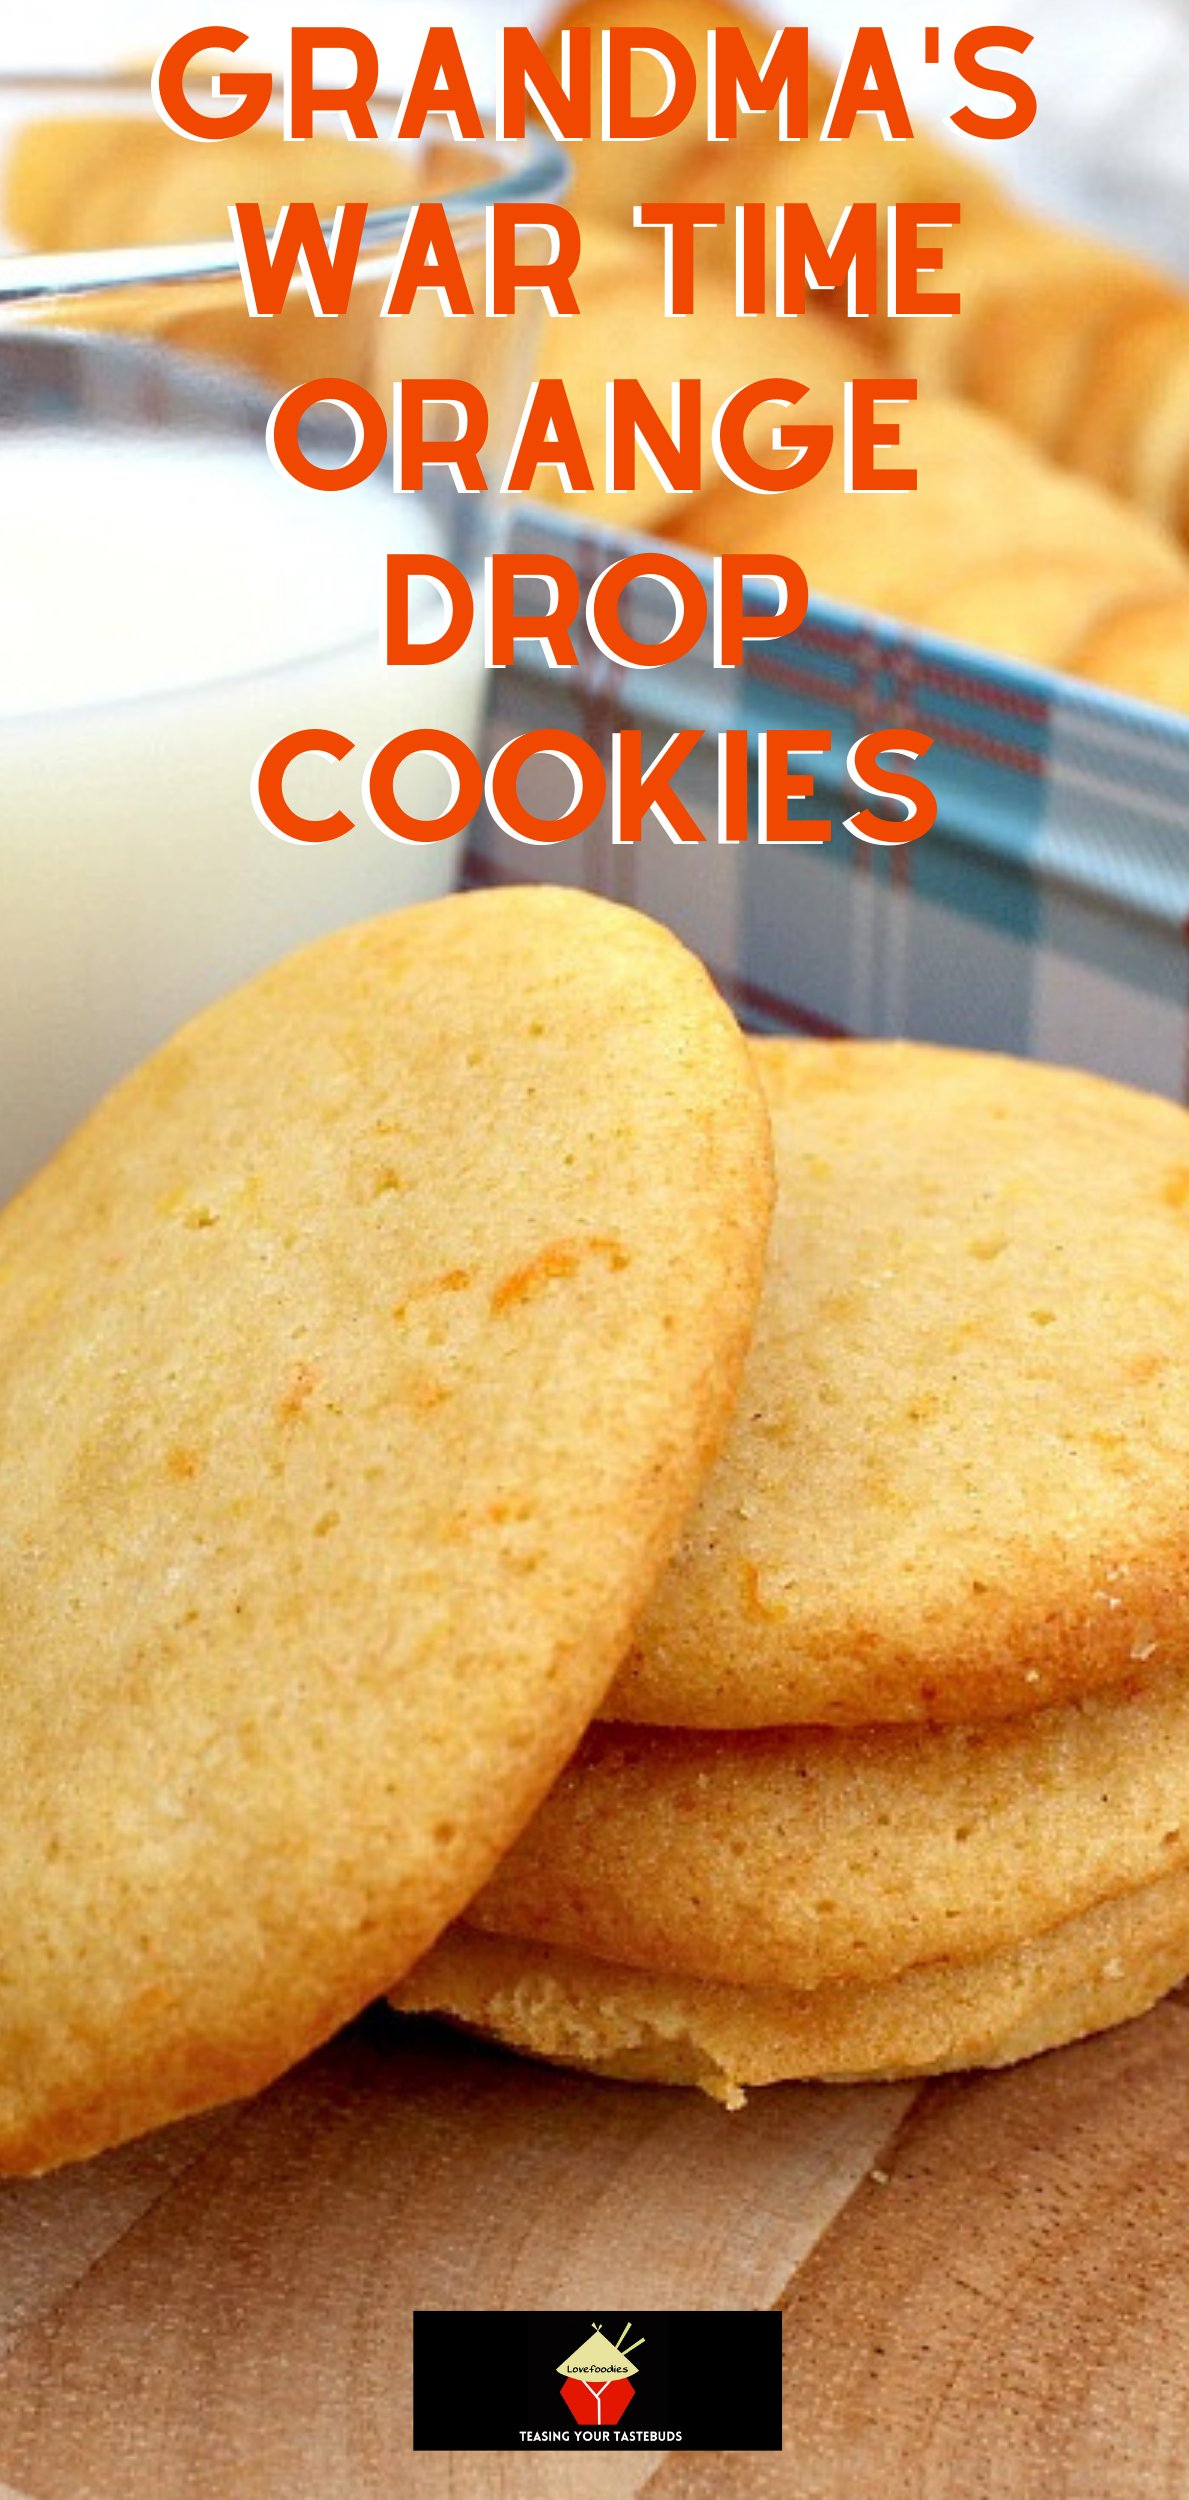 Grandma's War Time Orange Drop Cookies are an old family favorite dating back to the second world war when rationing was in force. Grandma always came up with a great cookie to enjoy!